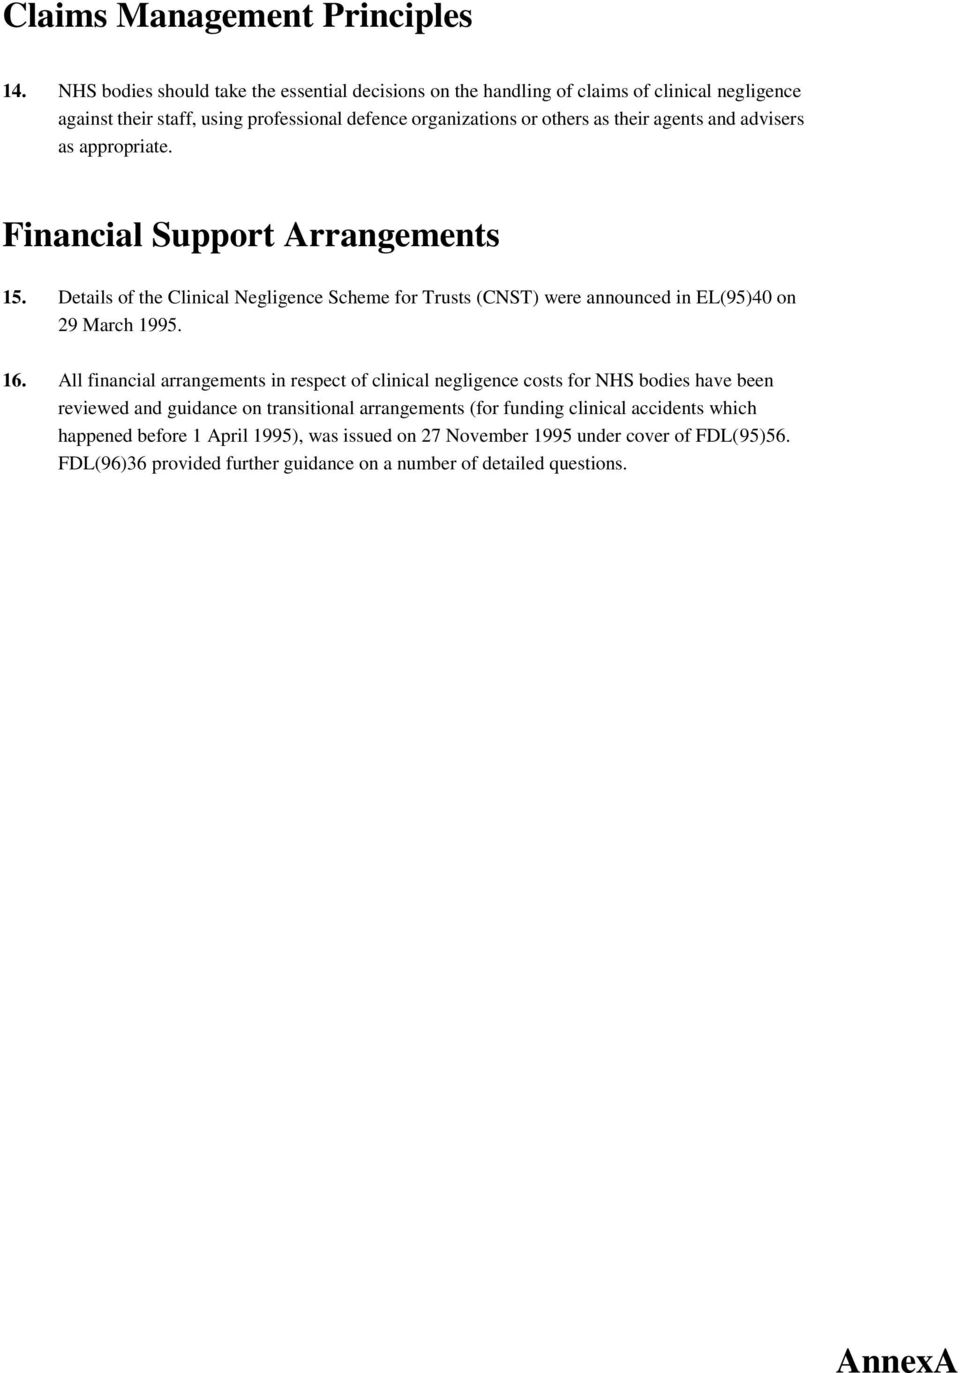 and advisers as appropriate. Financial Support Arrangements 15. Details of the Clinical Negligence Scheme for Trusts (CNST) were announced in EL(95)40 on 29 March 1995. 16.